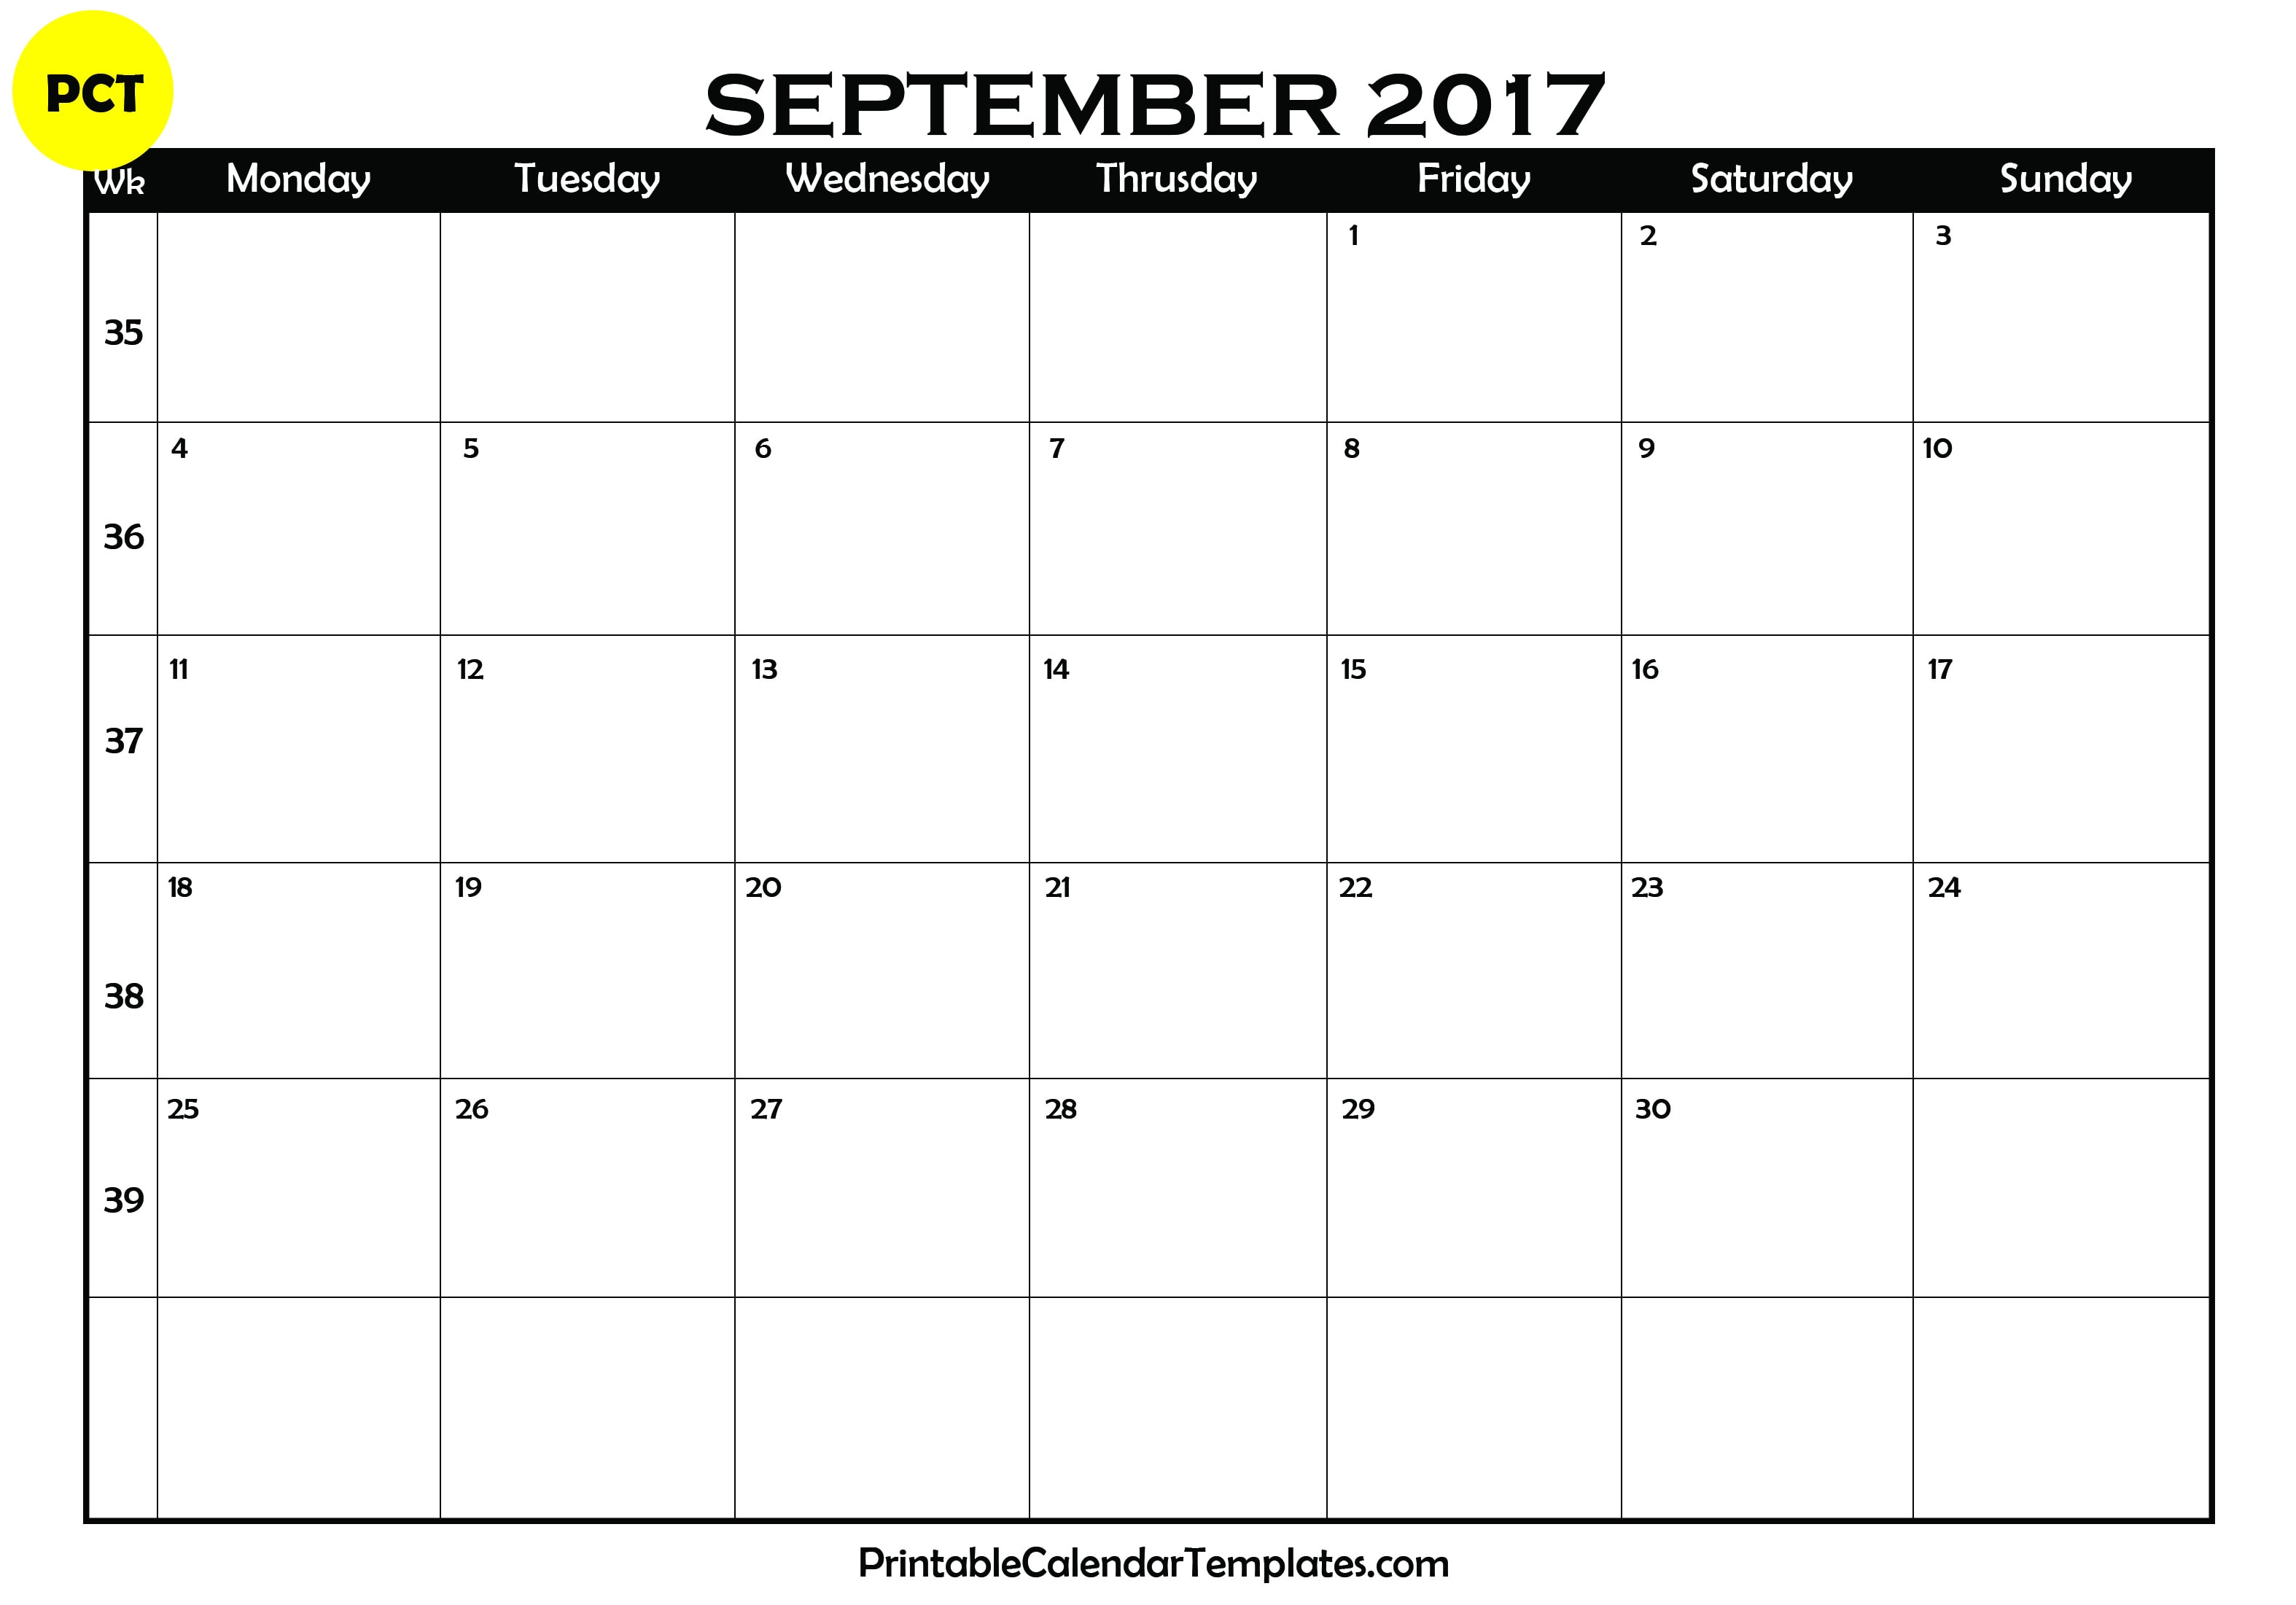 Calendar April To September : September calendar printable